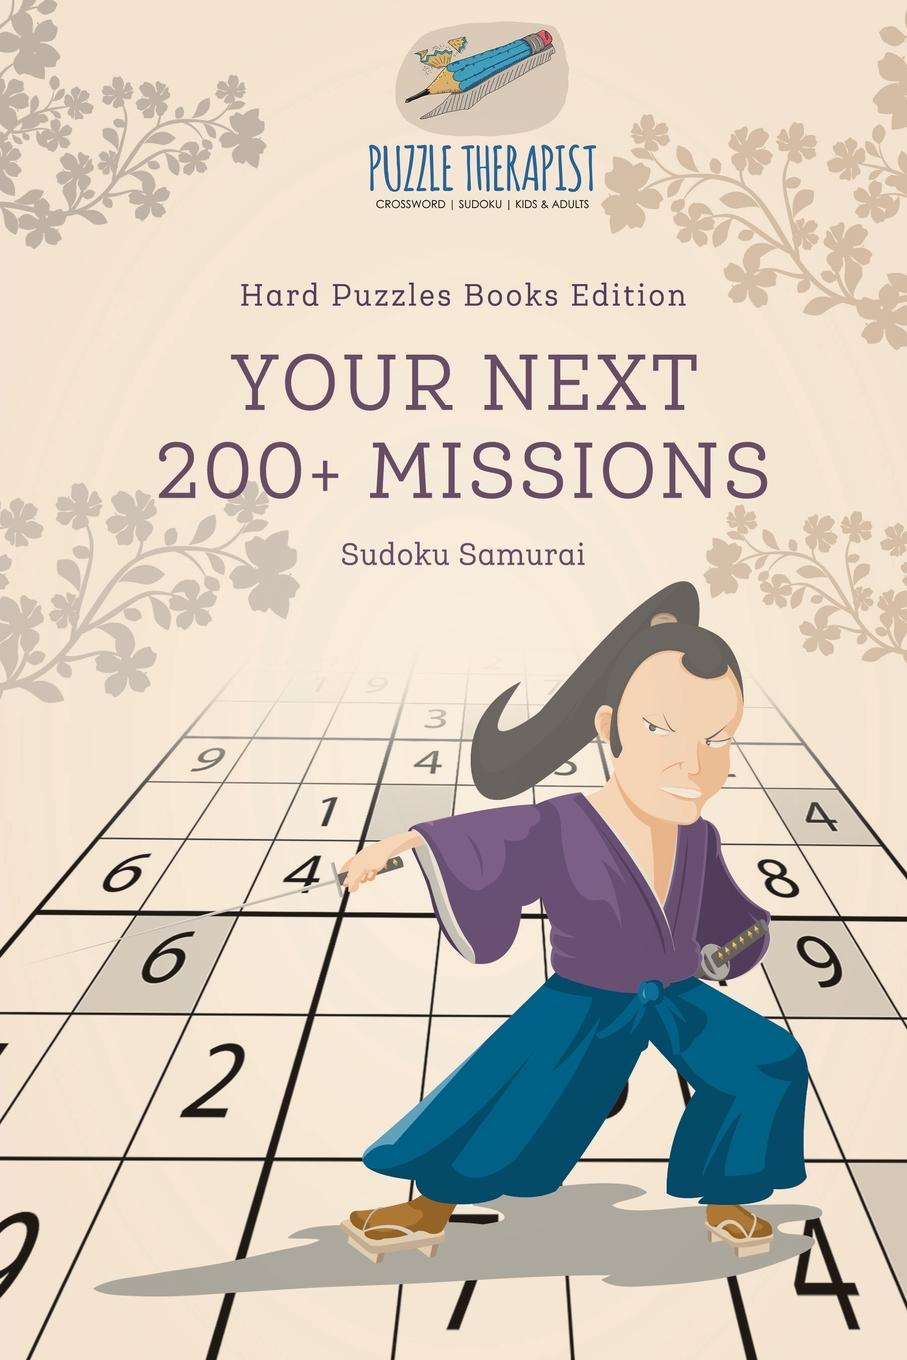 Puzzle Therapist Your Next 200. Missions . Sudoku Samurai . Hard Puzzles Books Edition puzzle therapist the number addict s book of hard to extreme sudoku 200 challenging sudoku puzzles